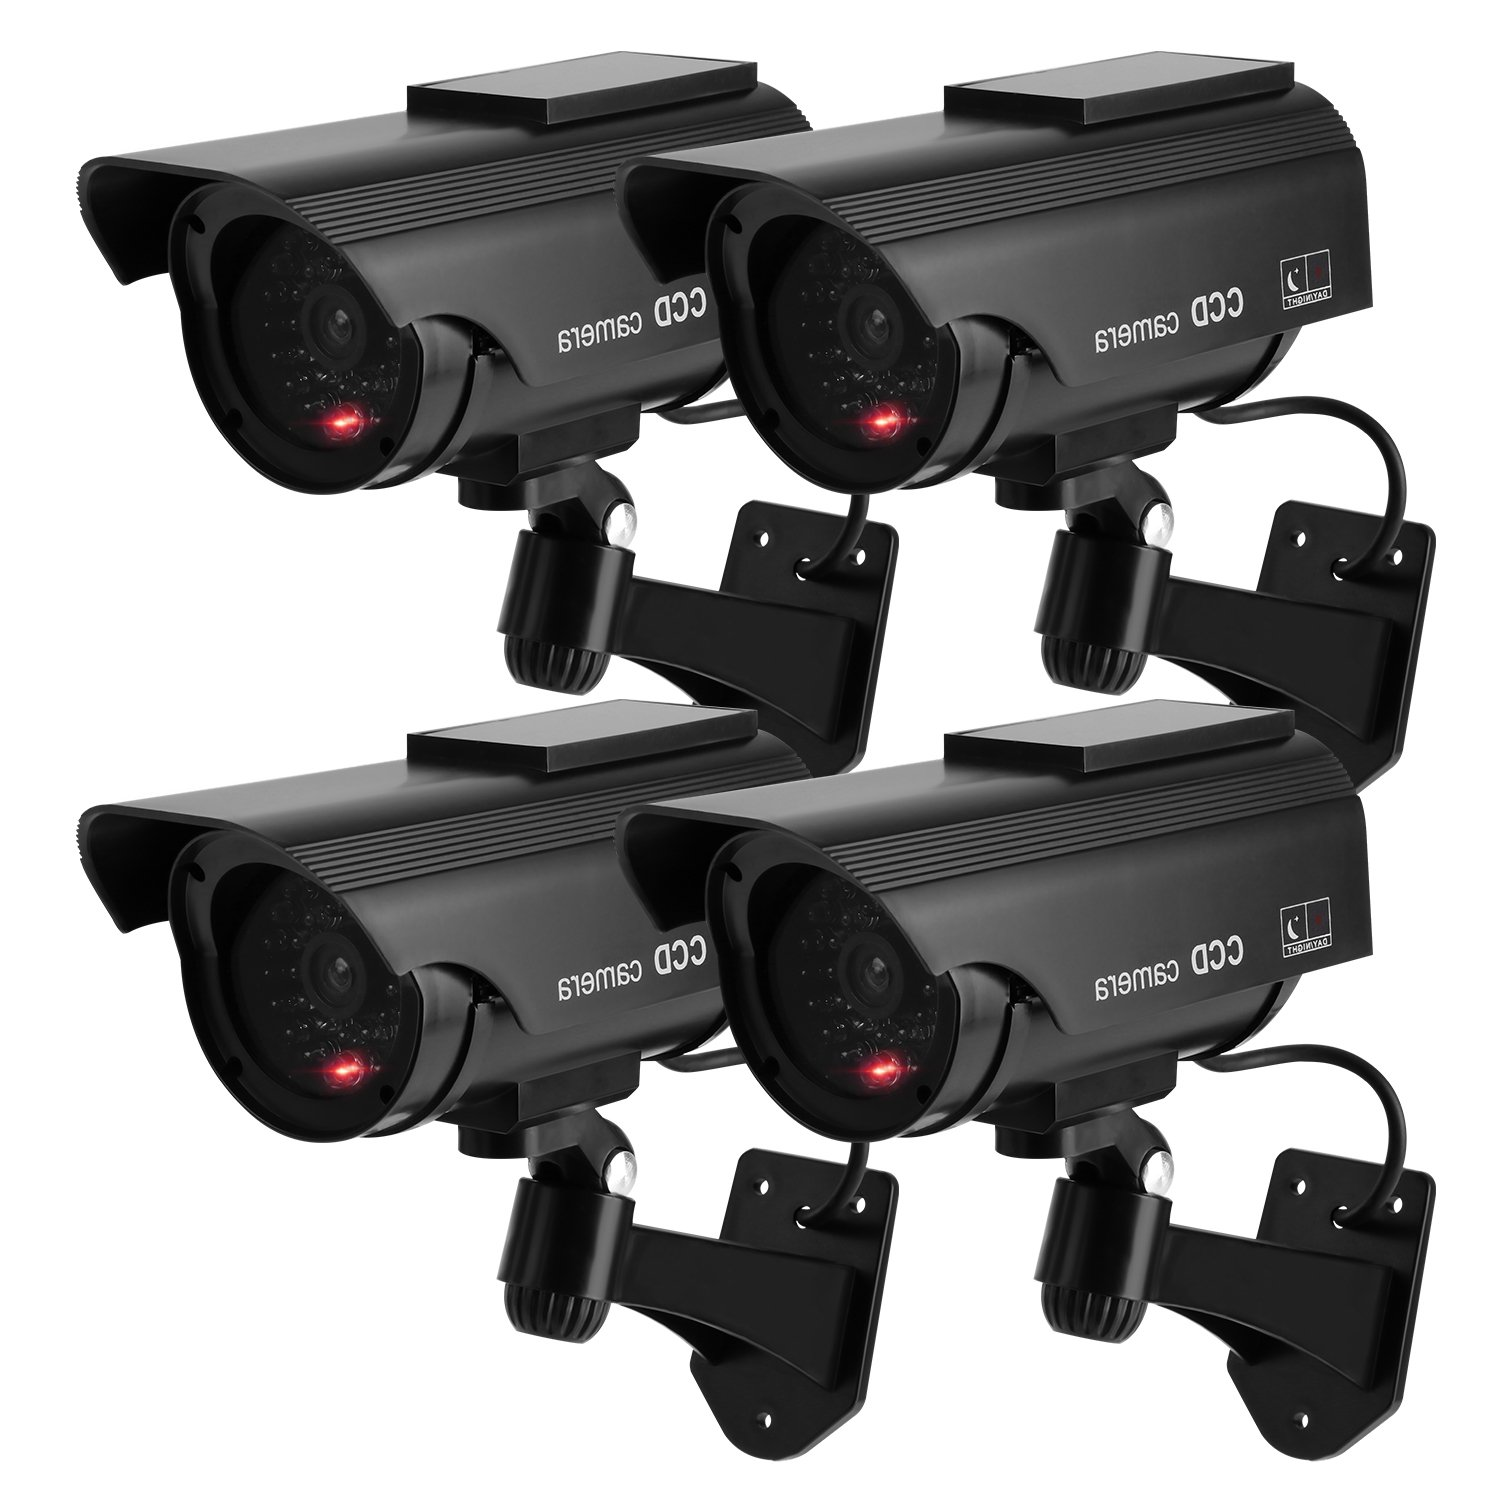 TOROTON Bullet Dummy Fake Security CCTV Solar Powered Camera Simulation Monitor with LED Blinking Light,Outdoor/Indoor Use for Homes & Business,4 Pack by TOROTON